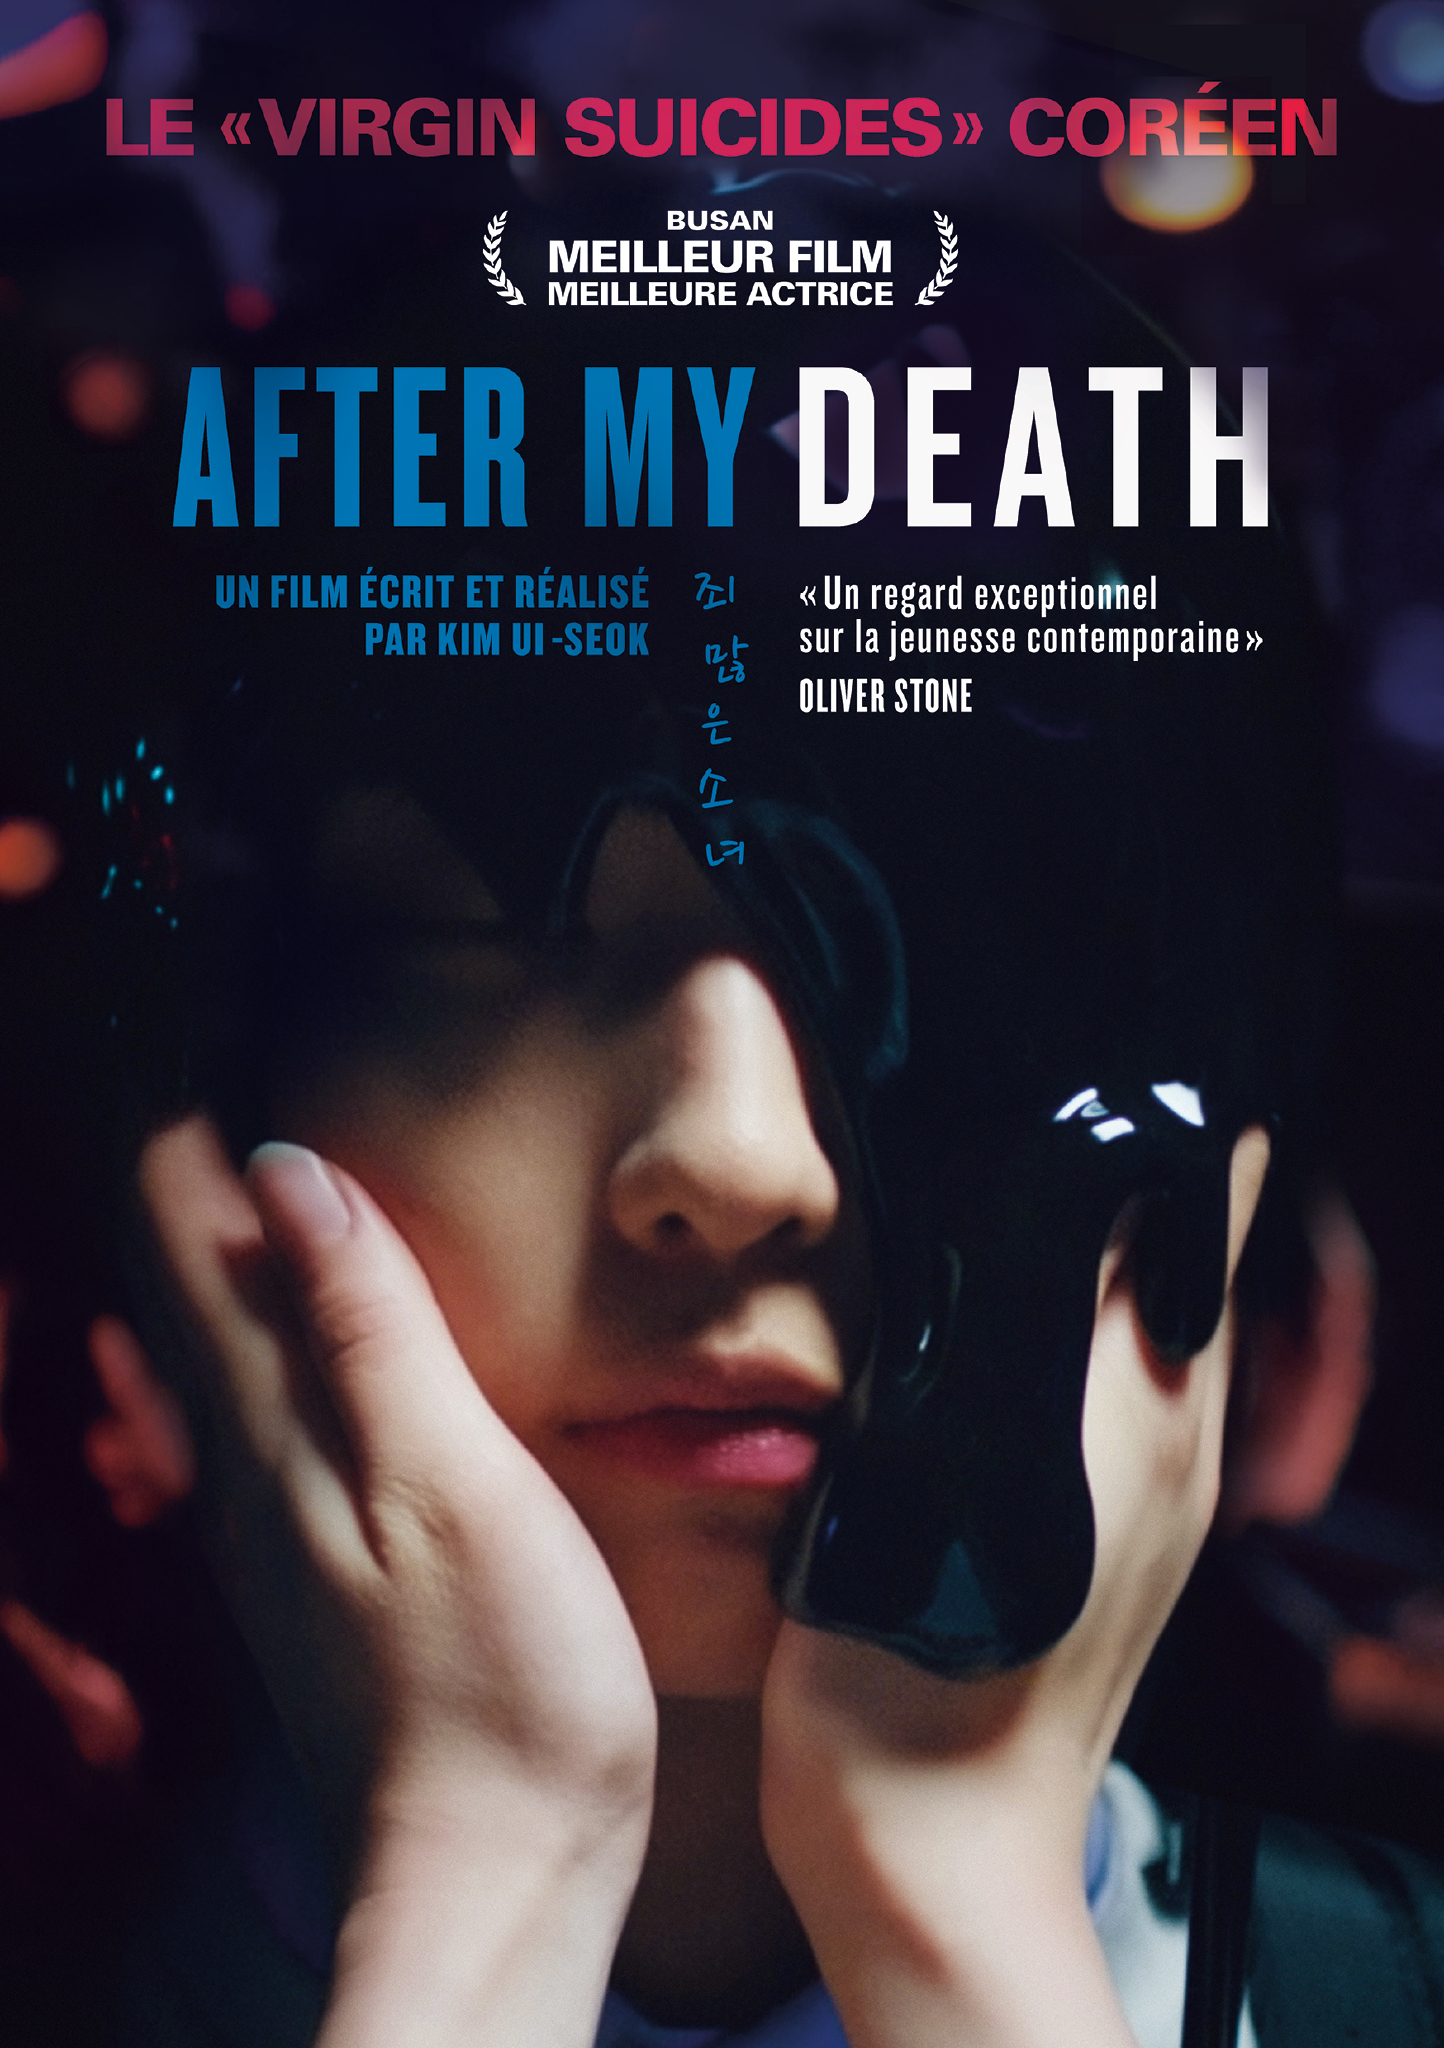 [Critique] After my death : une charge radicale